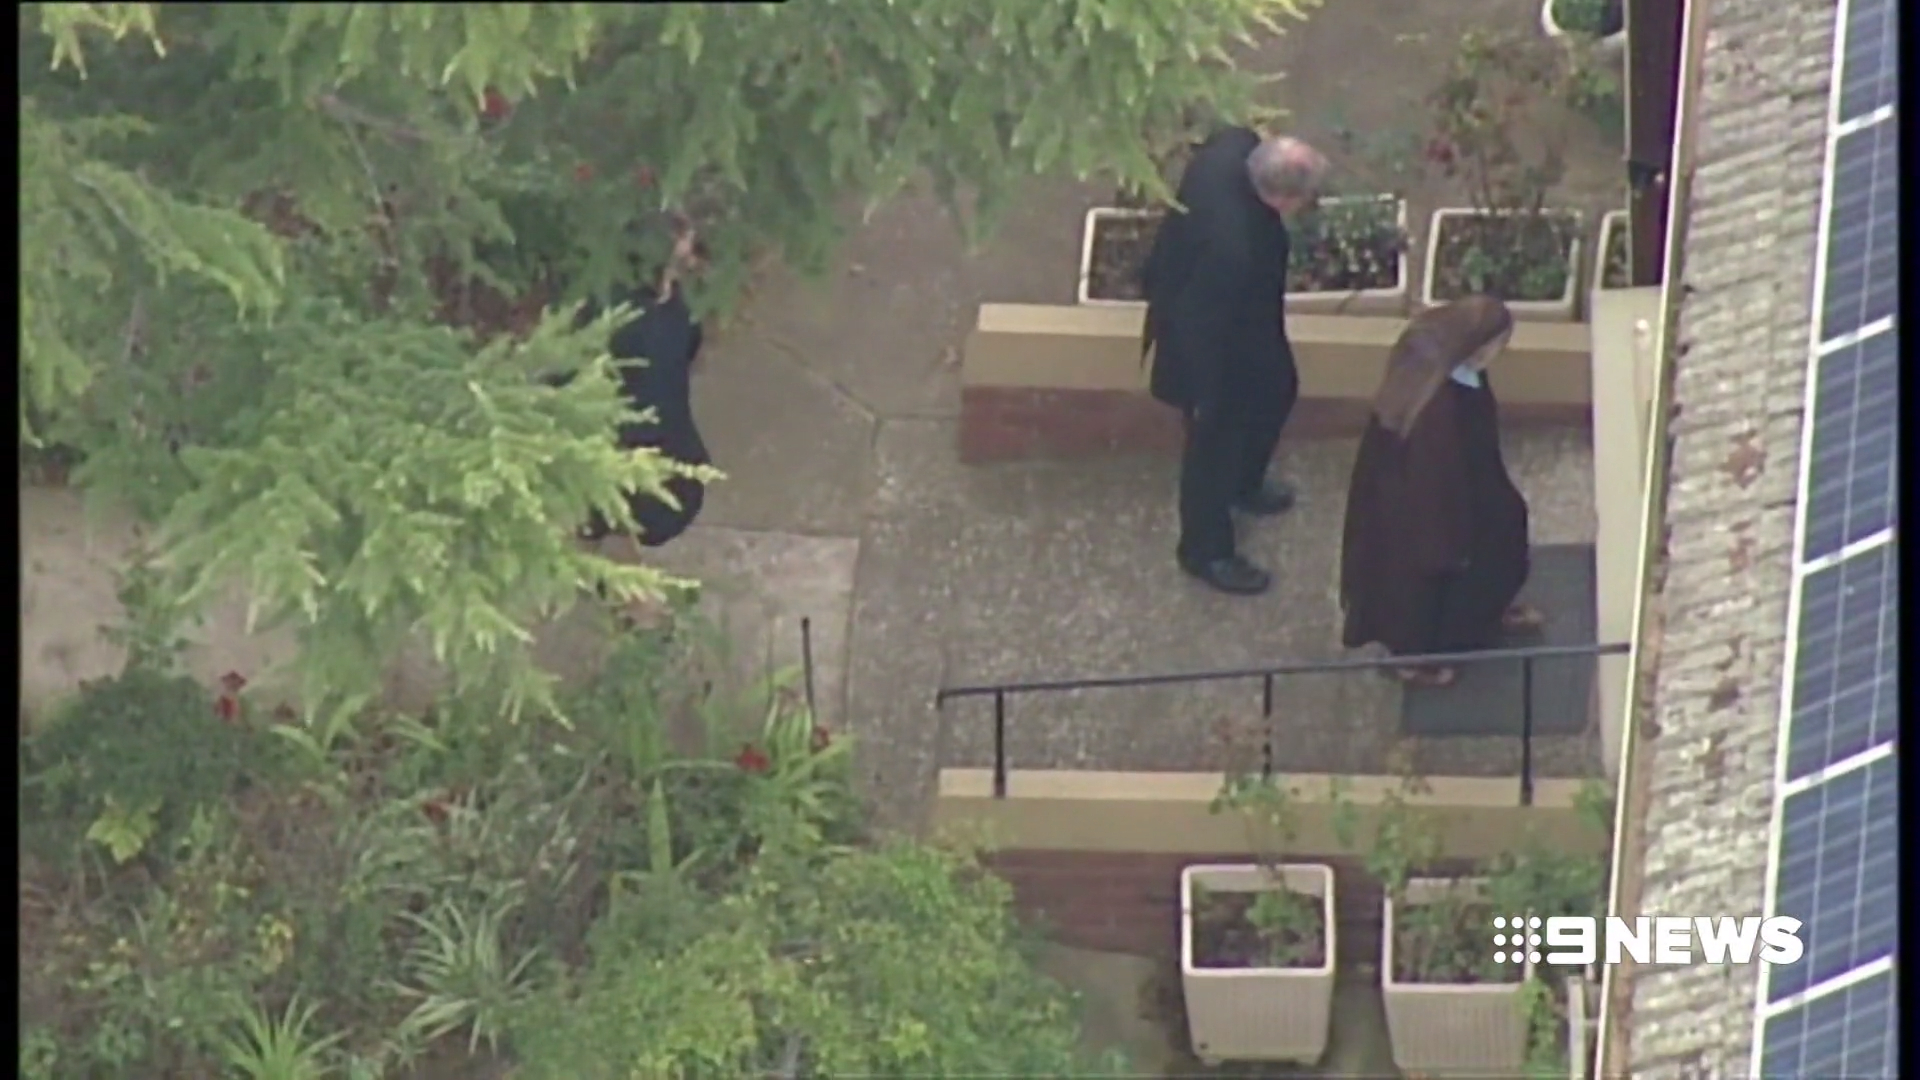 George Pell arrives at Carmelite Monastery in Melbourne after leaving prison